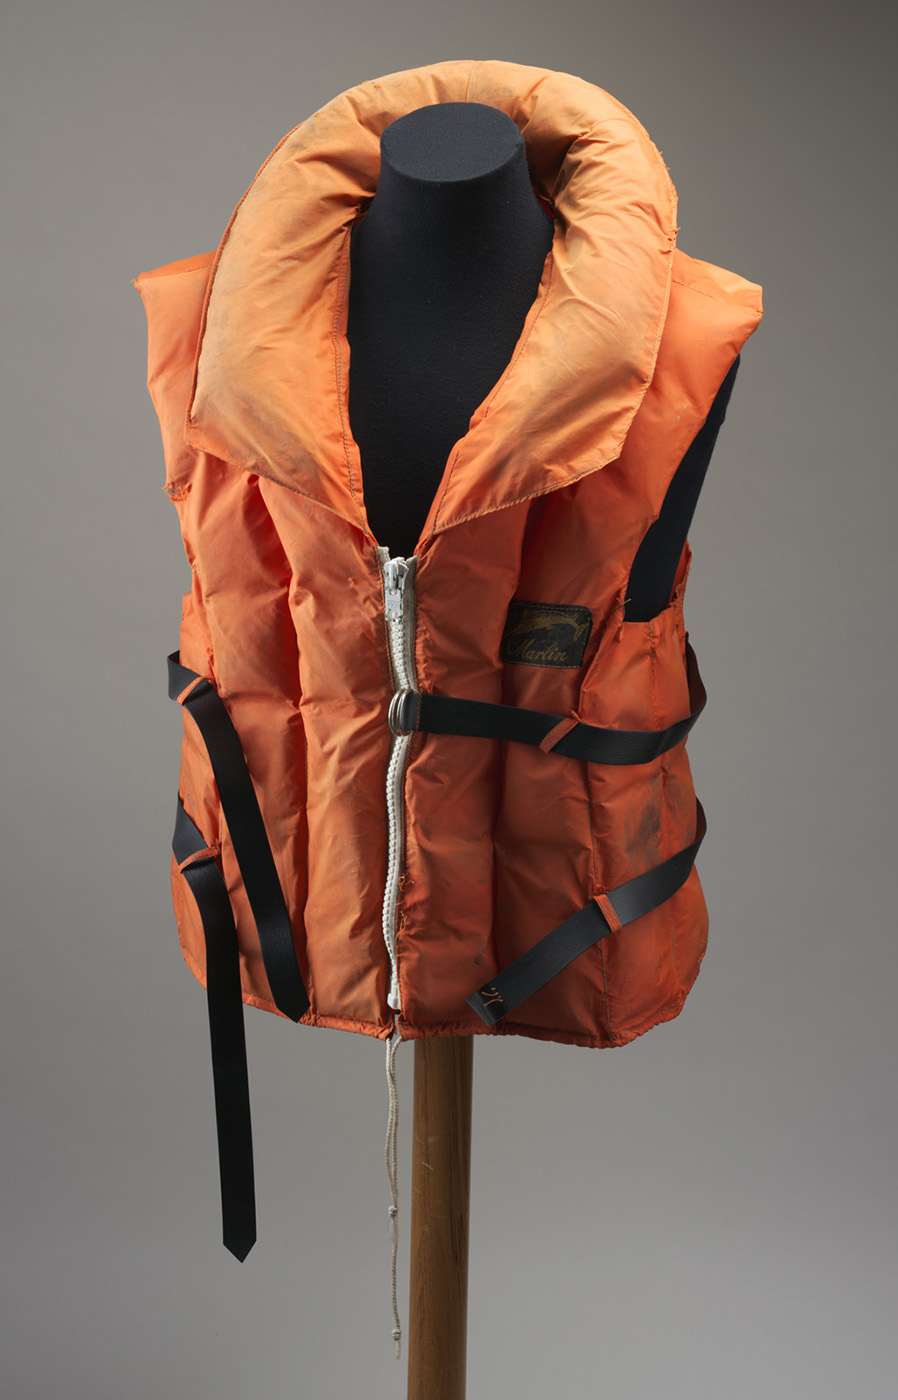 An orange life jacket, mounted on a mannequin. The sleeveless jacket has a collar, a zip at the front and two black straps around the middle. - click to view larger image